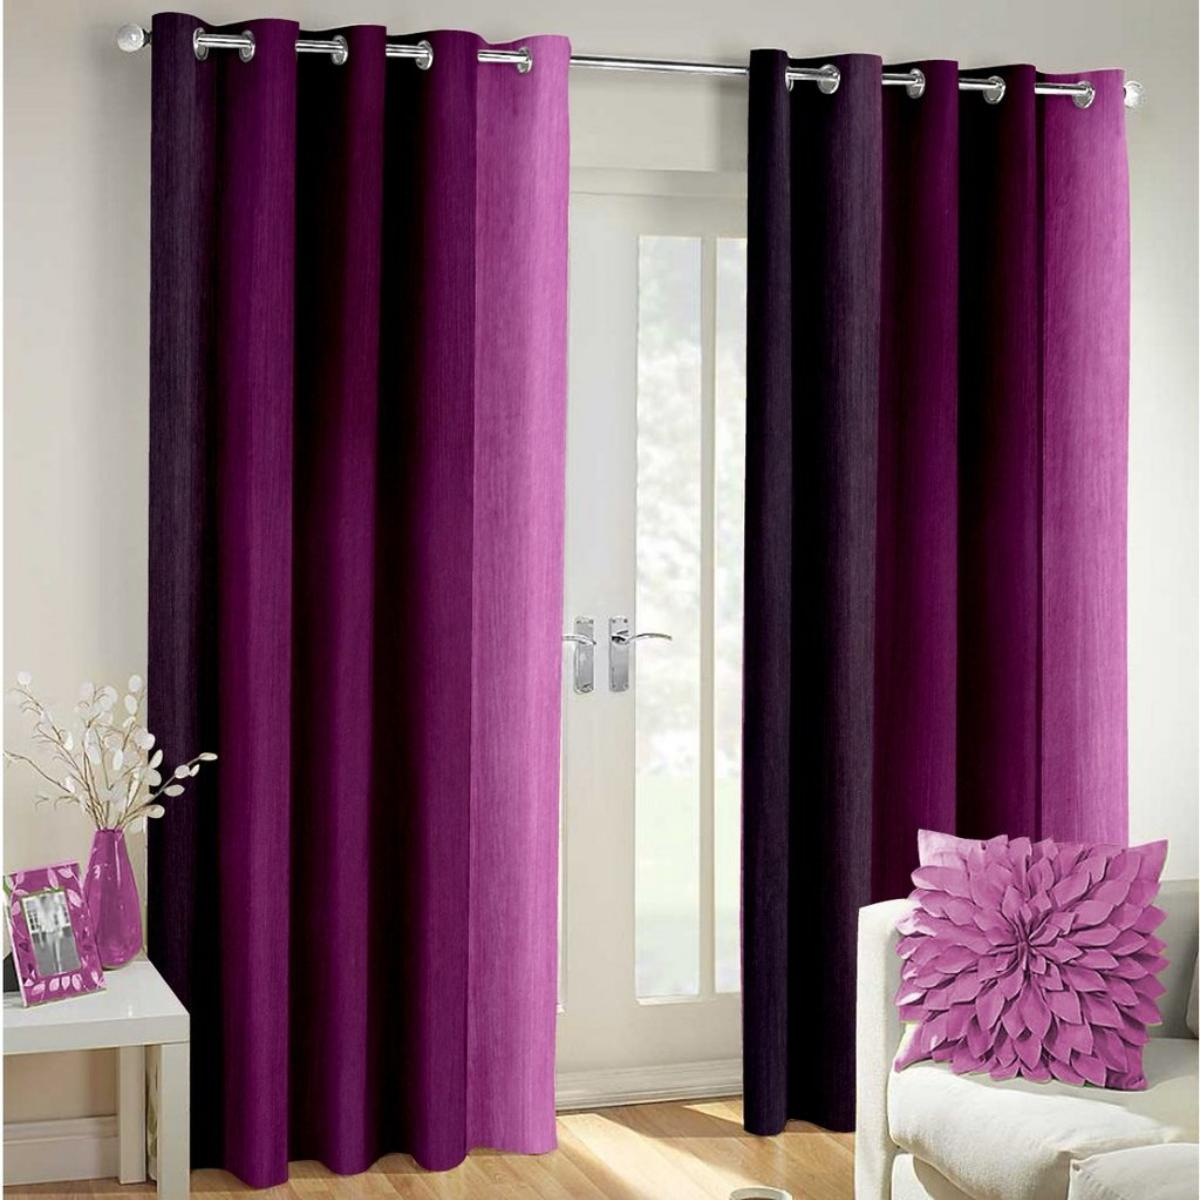 IndianOnlineMall shaded set of 2 long crush curtain(4x7ft)